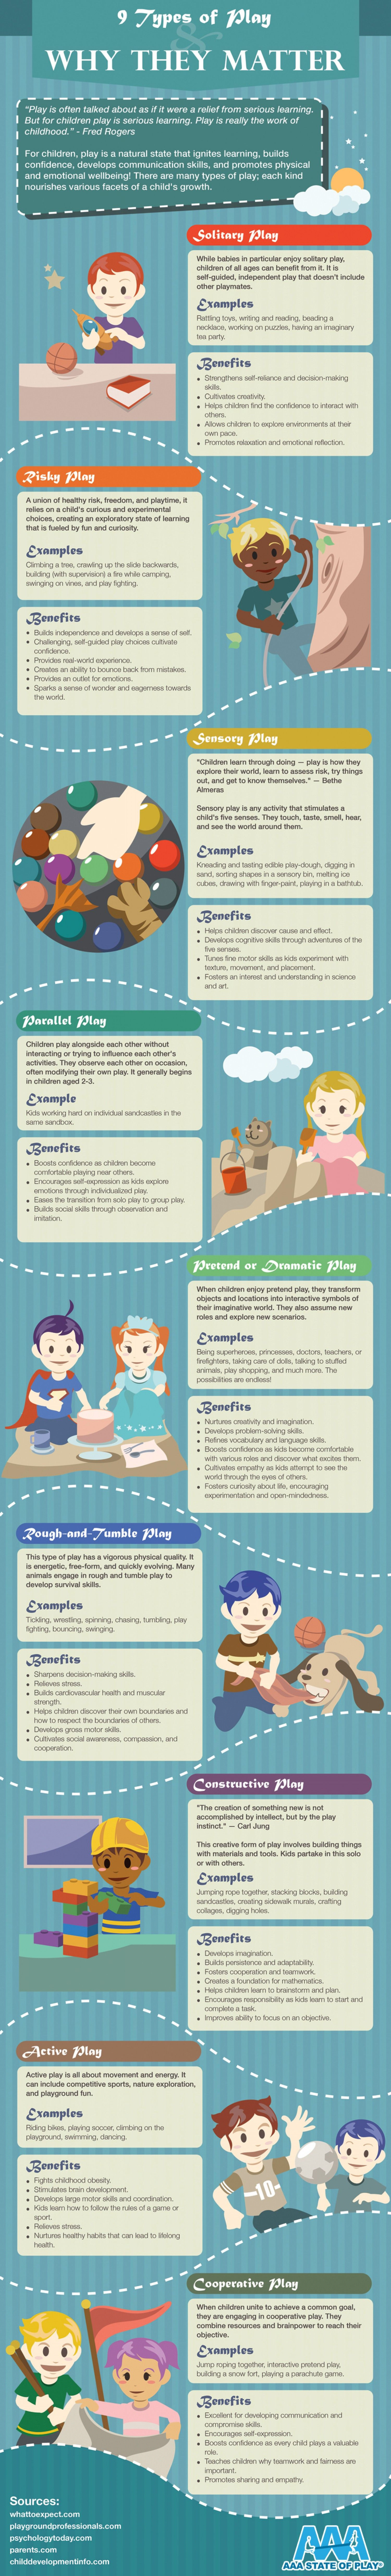 9 Types Of Play And Why They Matter Infographic   Kindergarten